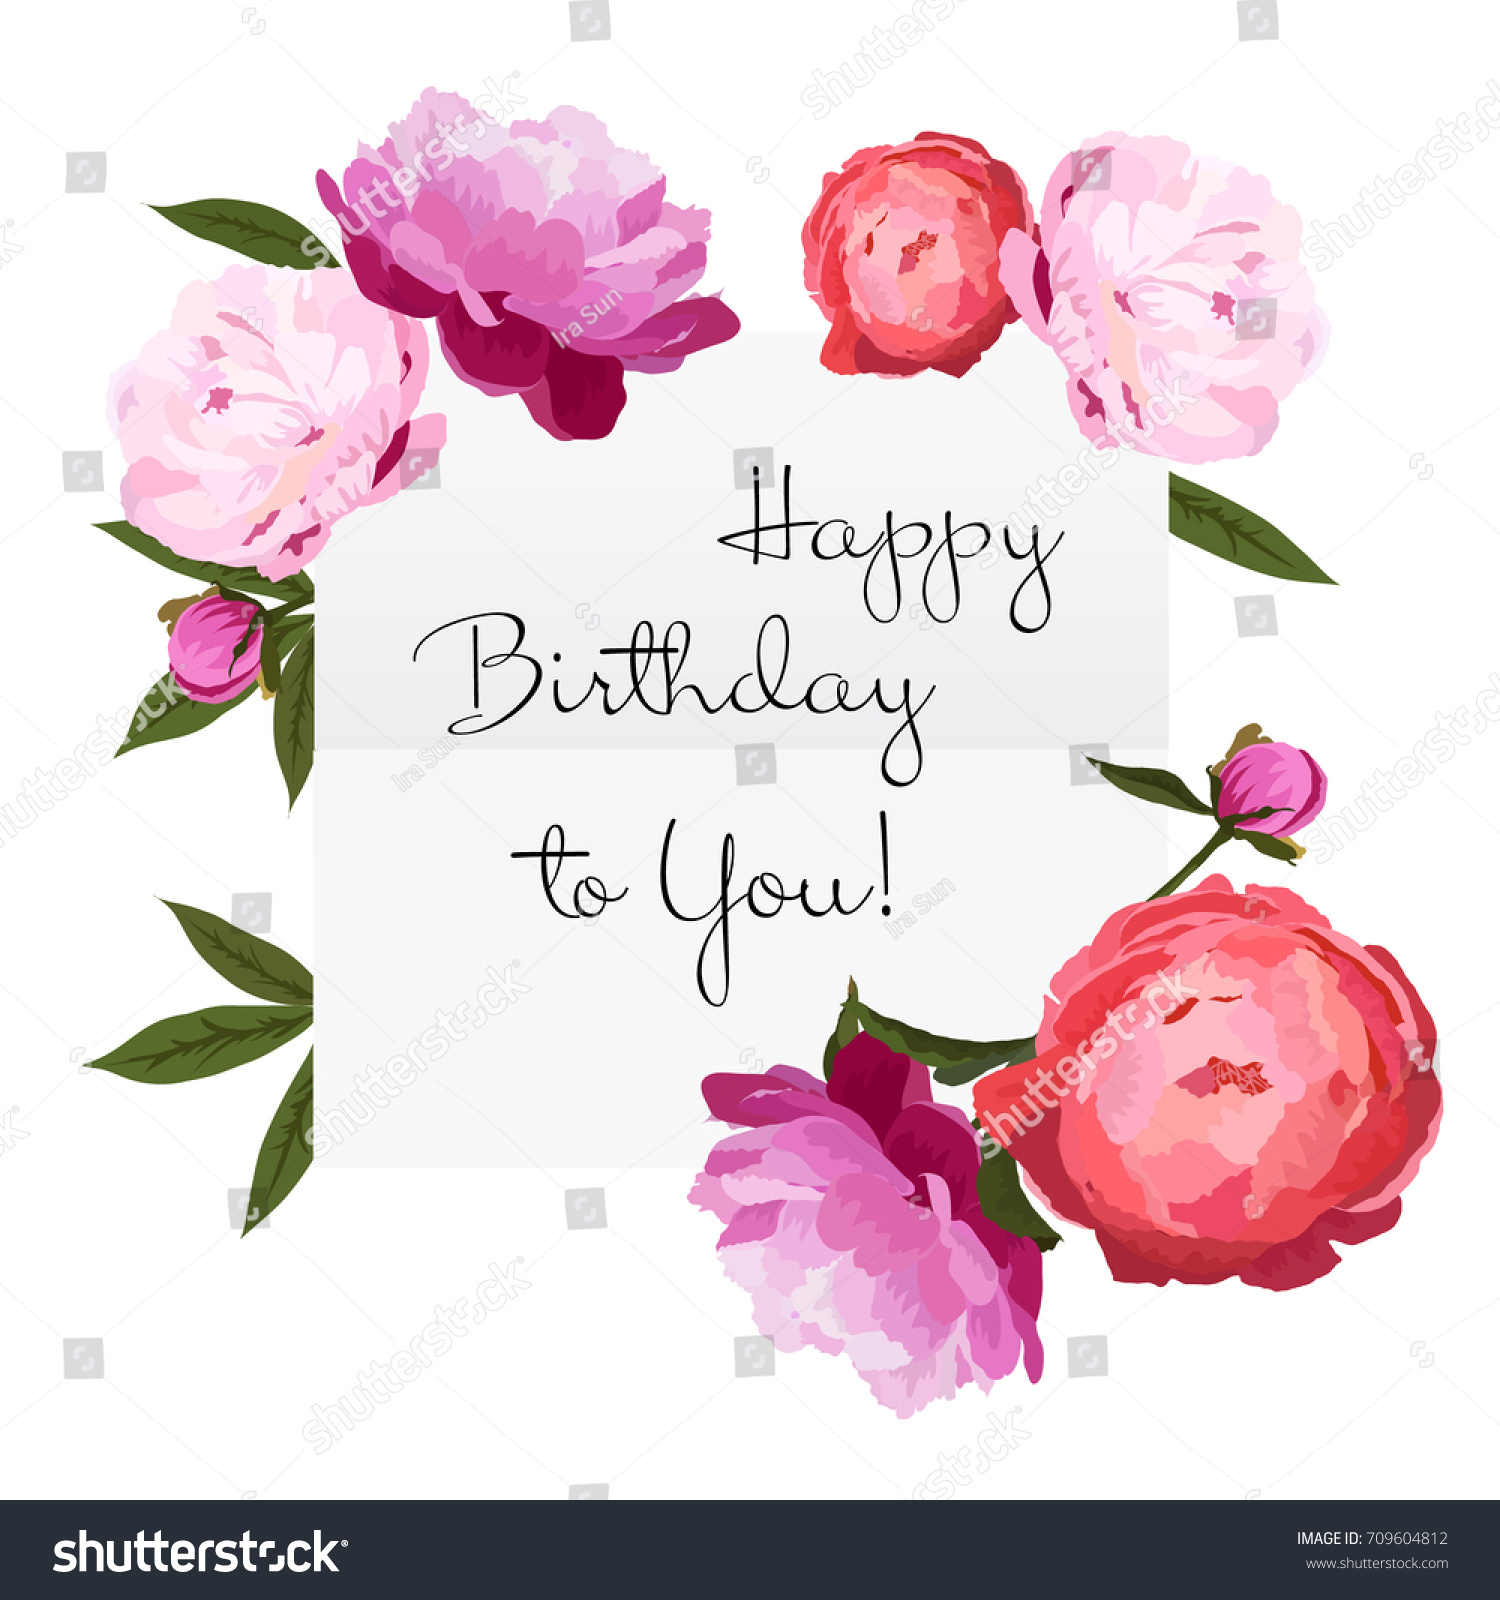 Vector illustration happy birthday card colorful stock vector vector illustration of happy birthday card with colorful peonies flowers red pink and violet izmirmasajfo